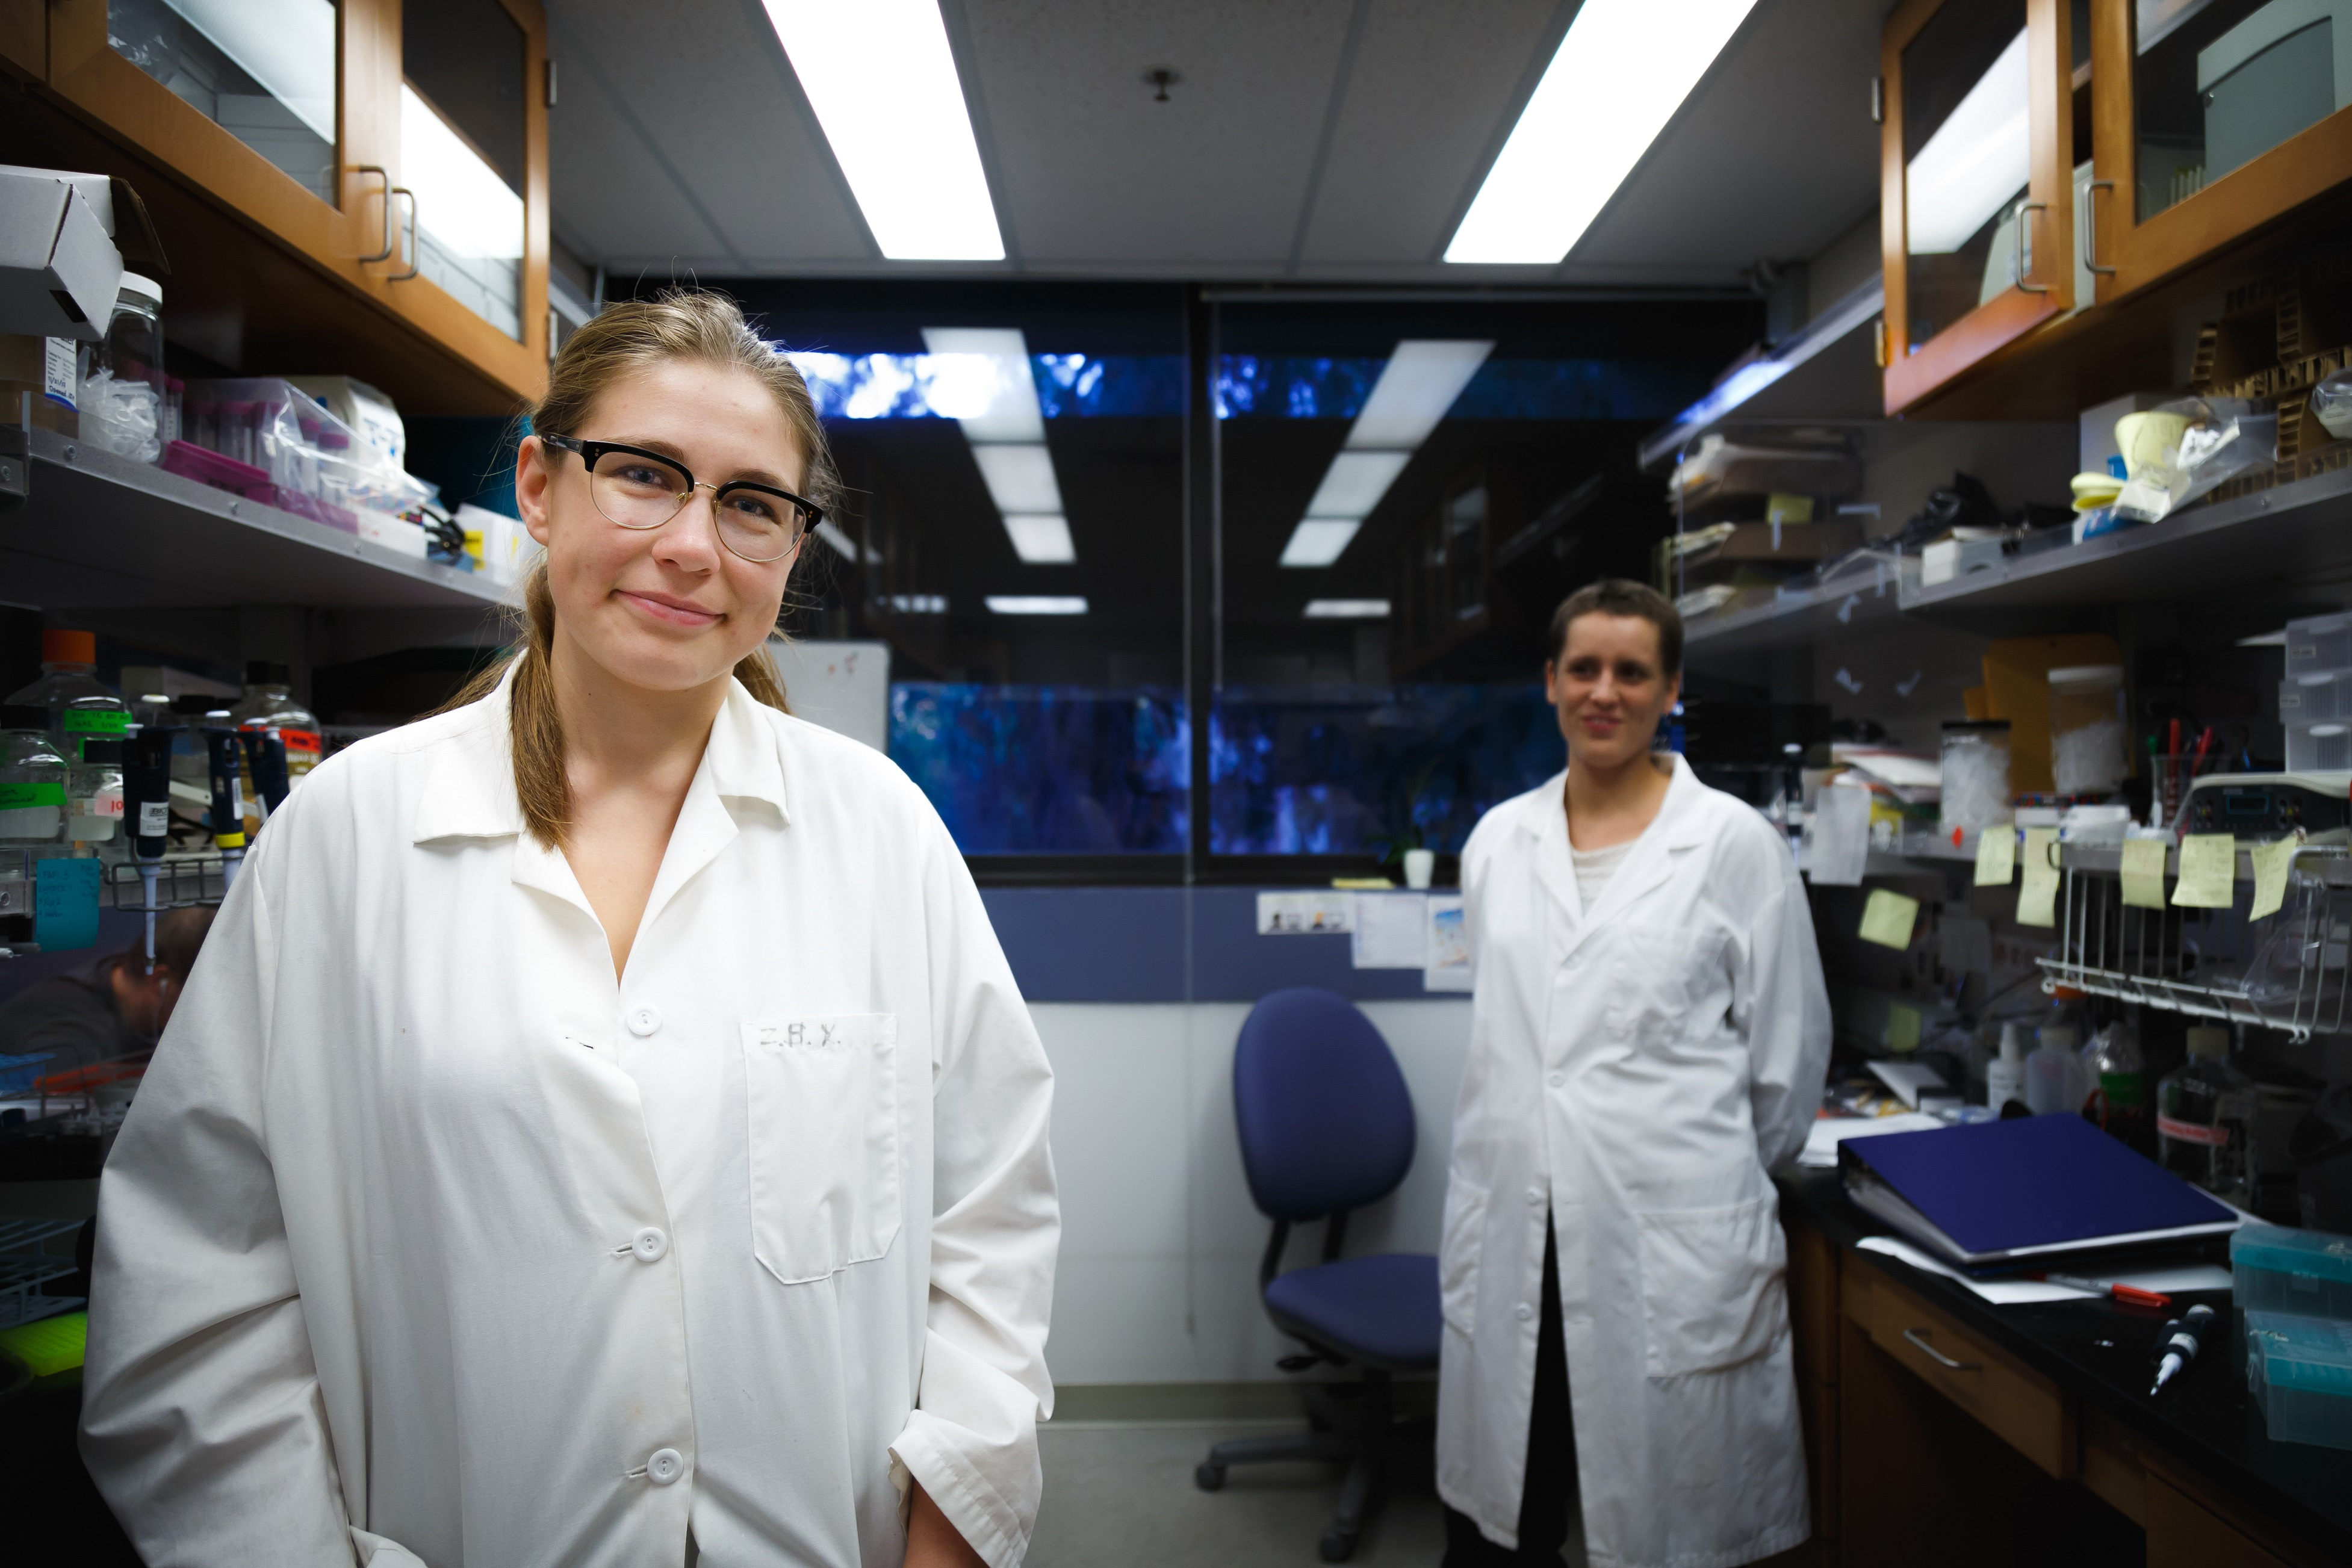 Ariana Nagainis in a white coat in the research lab.